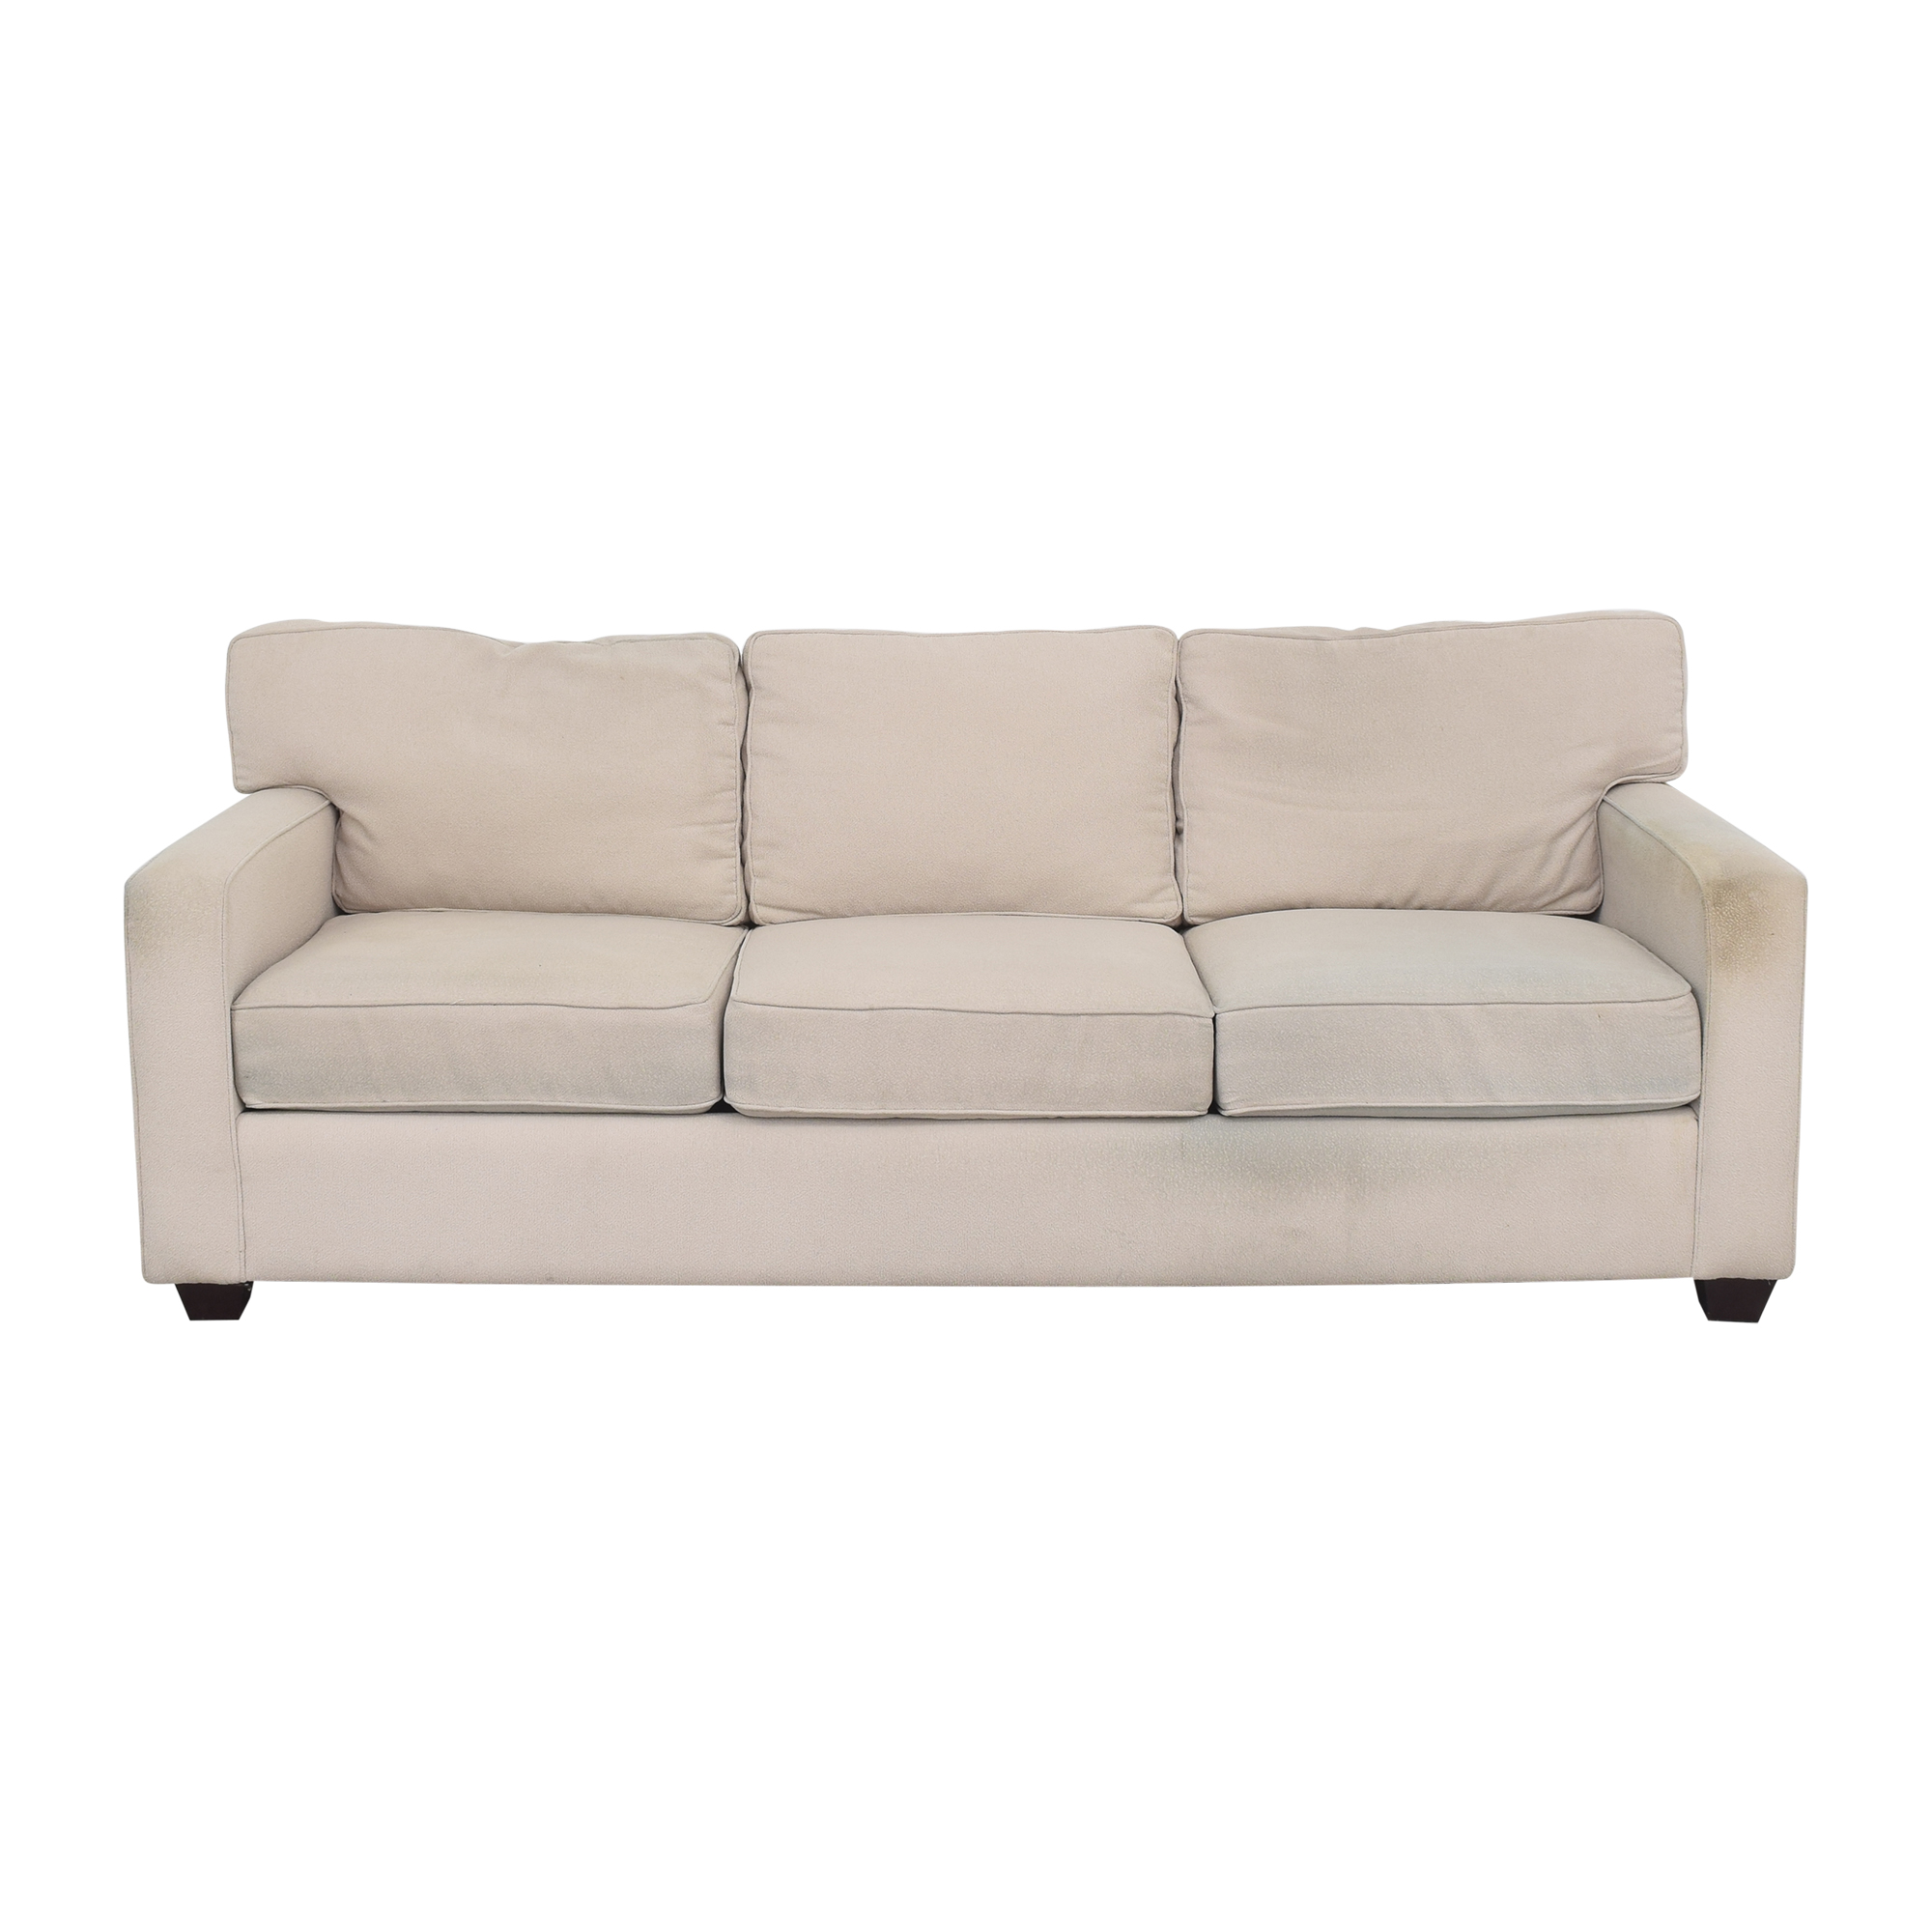 Precedent Furniture Precedent Contemporary Three Cushion Sofa second hand